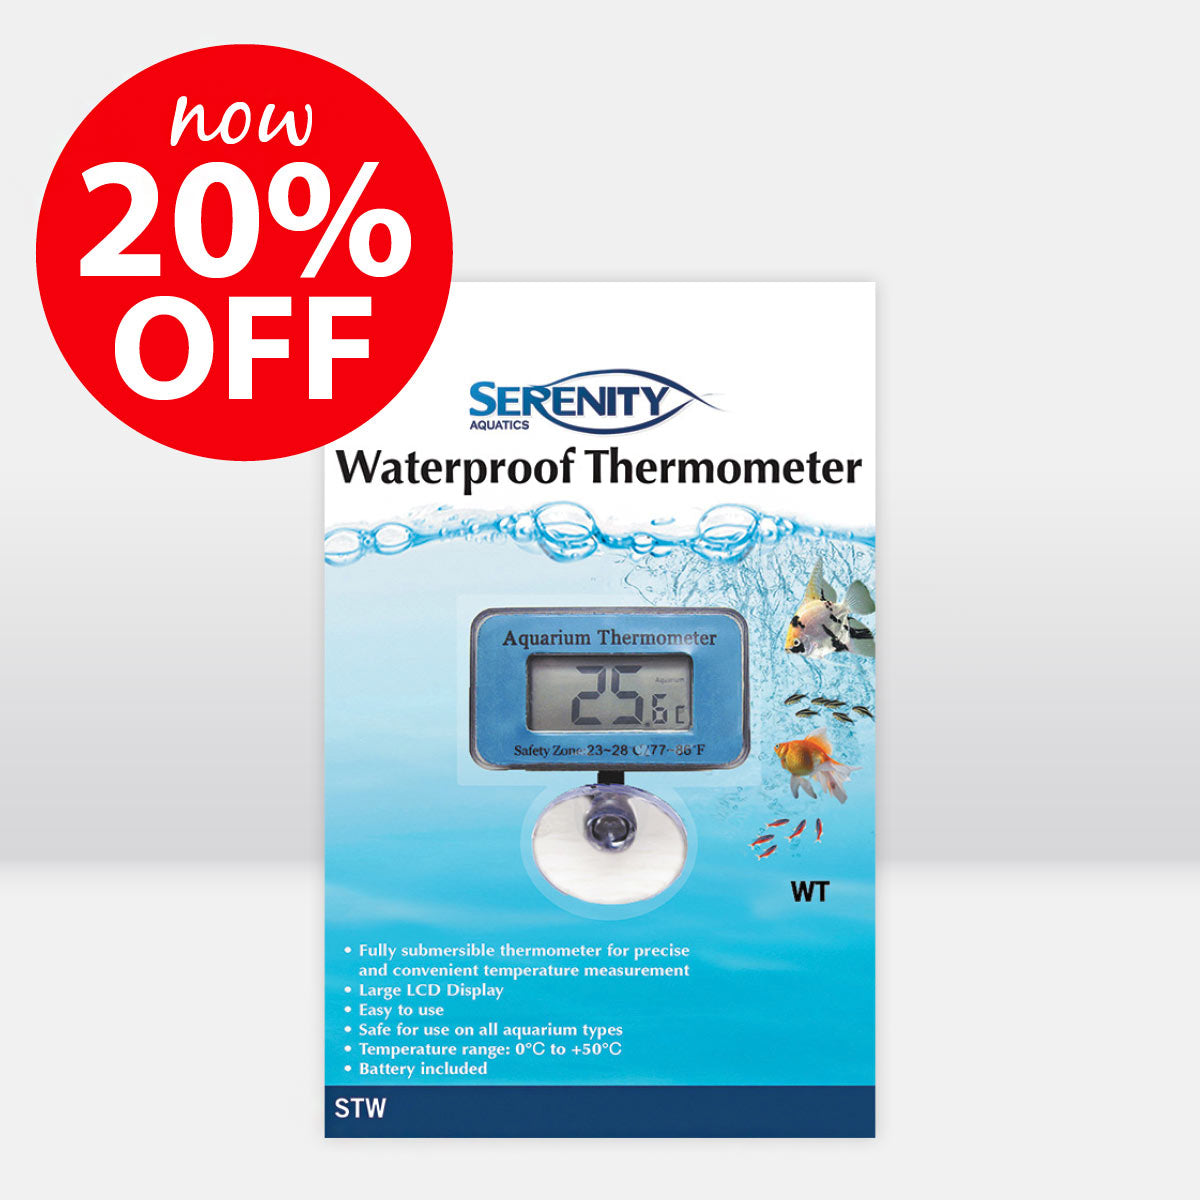 Serenity Aquatics Waterproof Thermometer ON SALE NOW